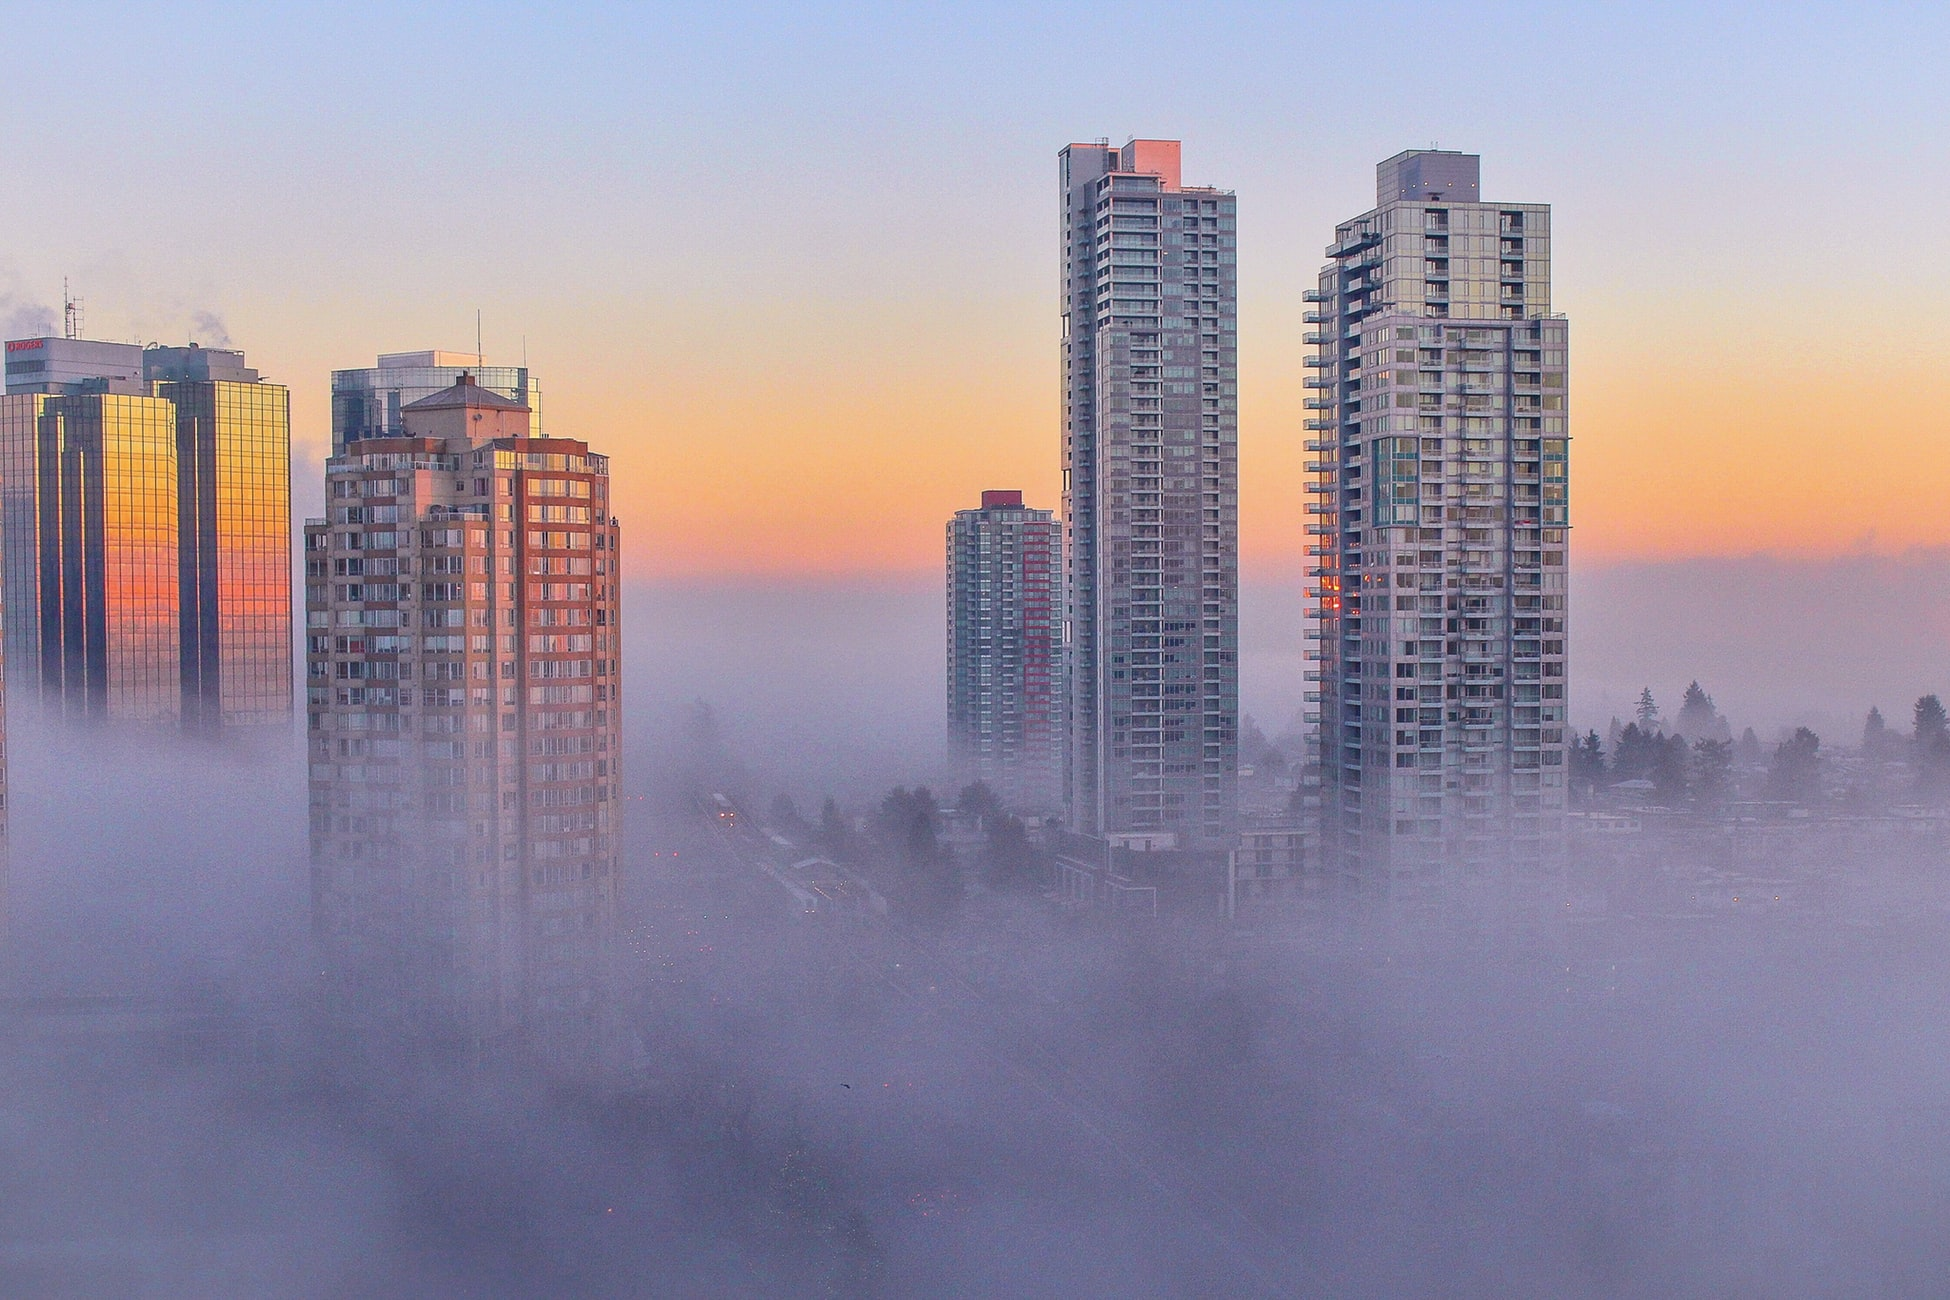 Skyscrapers reach above the fog in a Canadian city